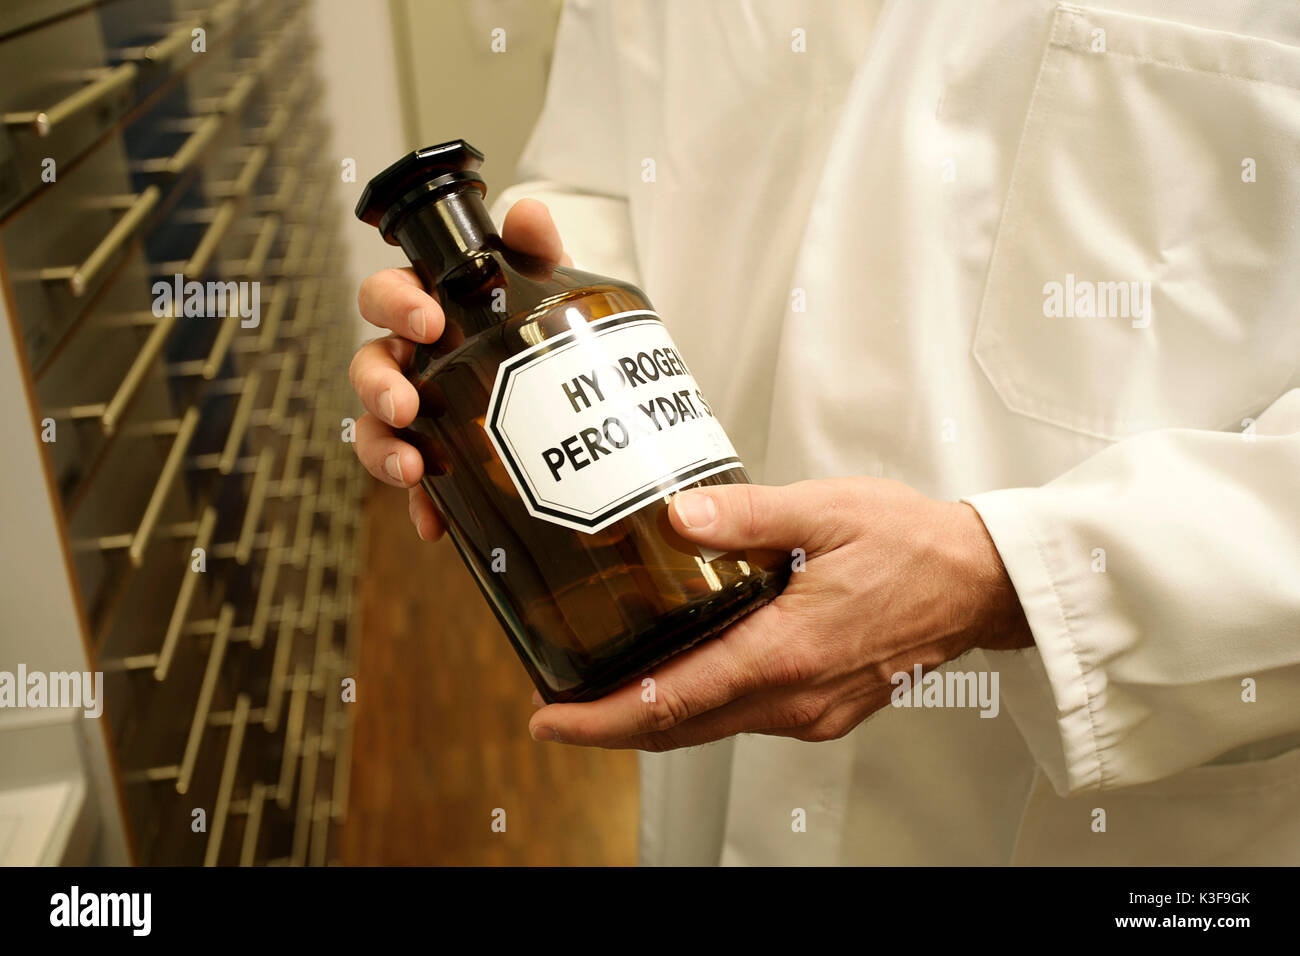 chemist with chemist bottle in the hands - Stock Image